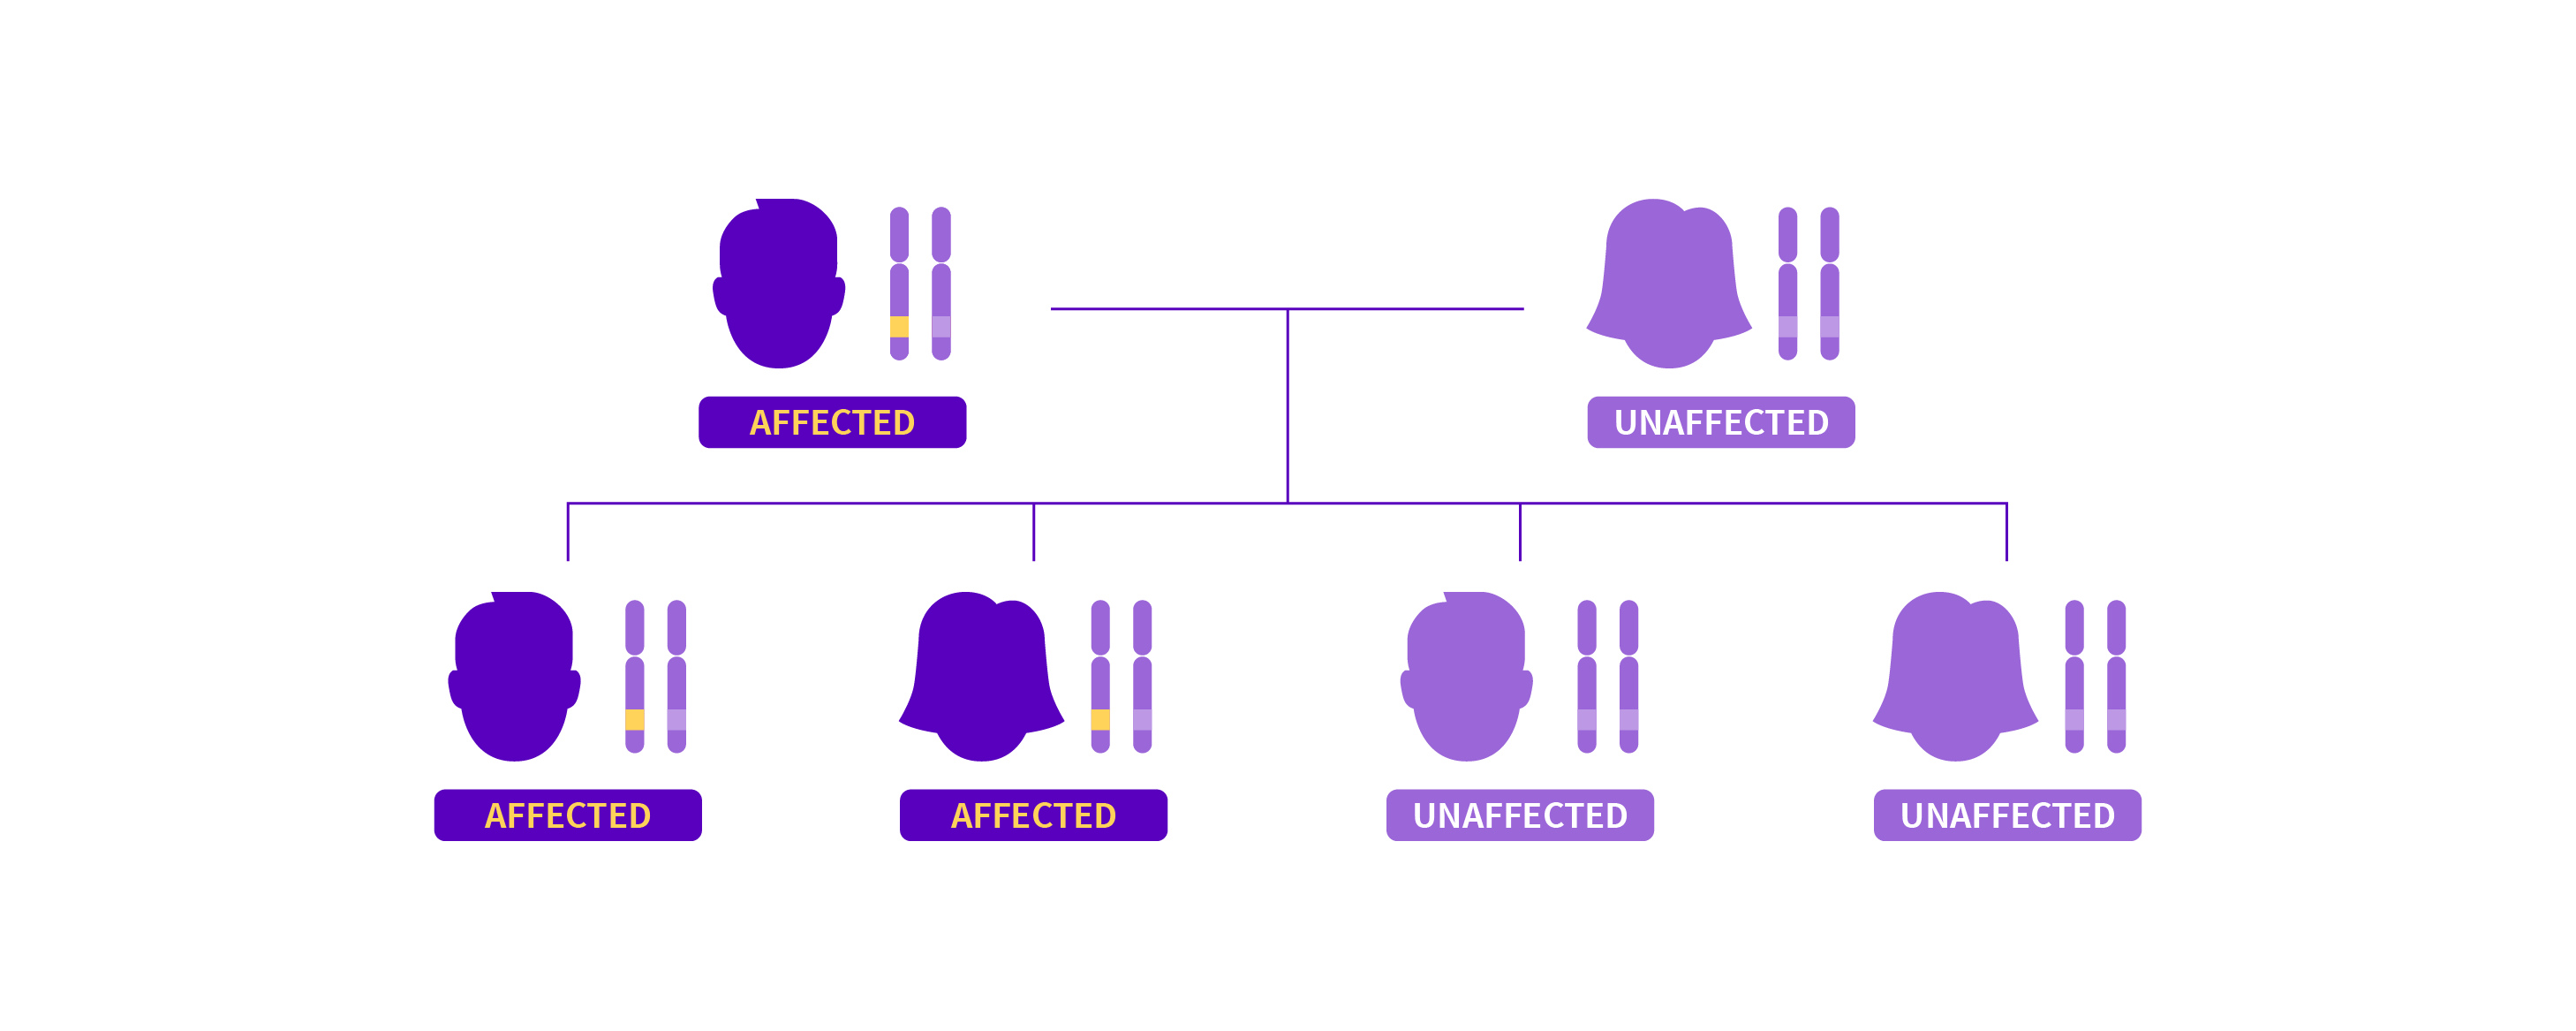 A family tree showing the autosomal dominant inheritance pattern of SSOAOD.